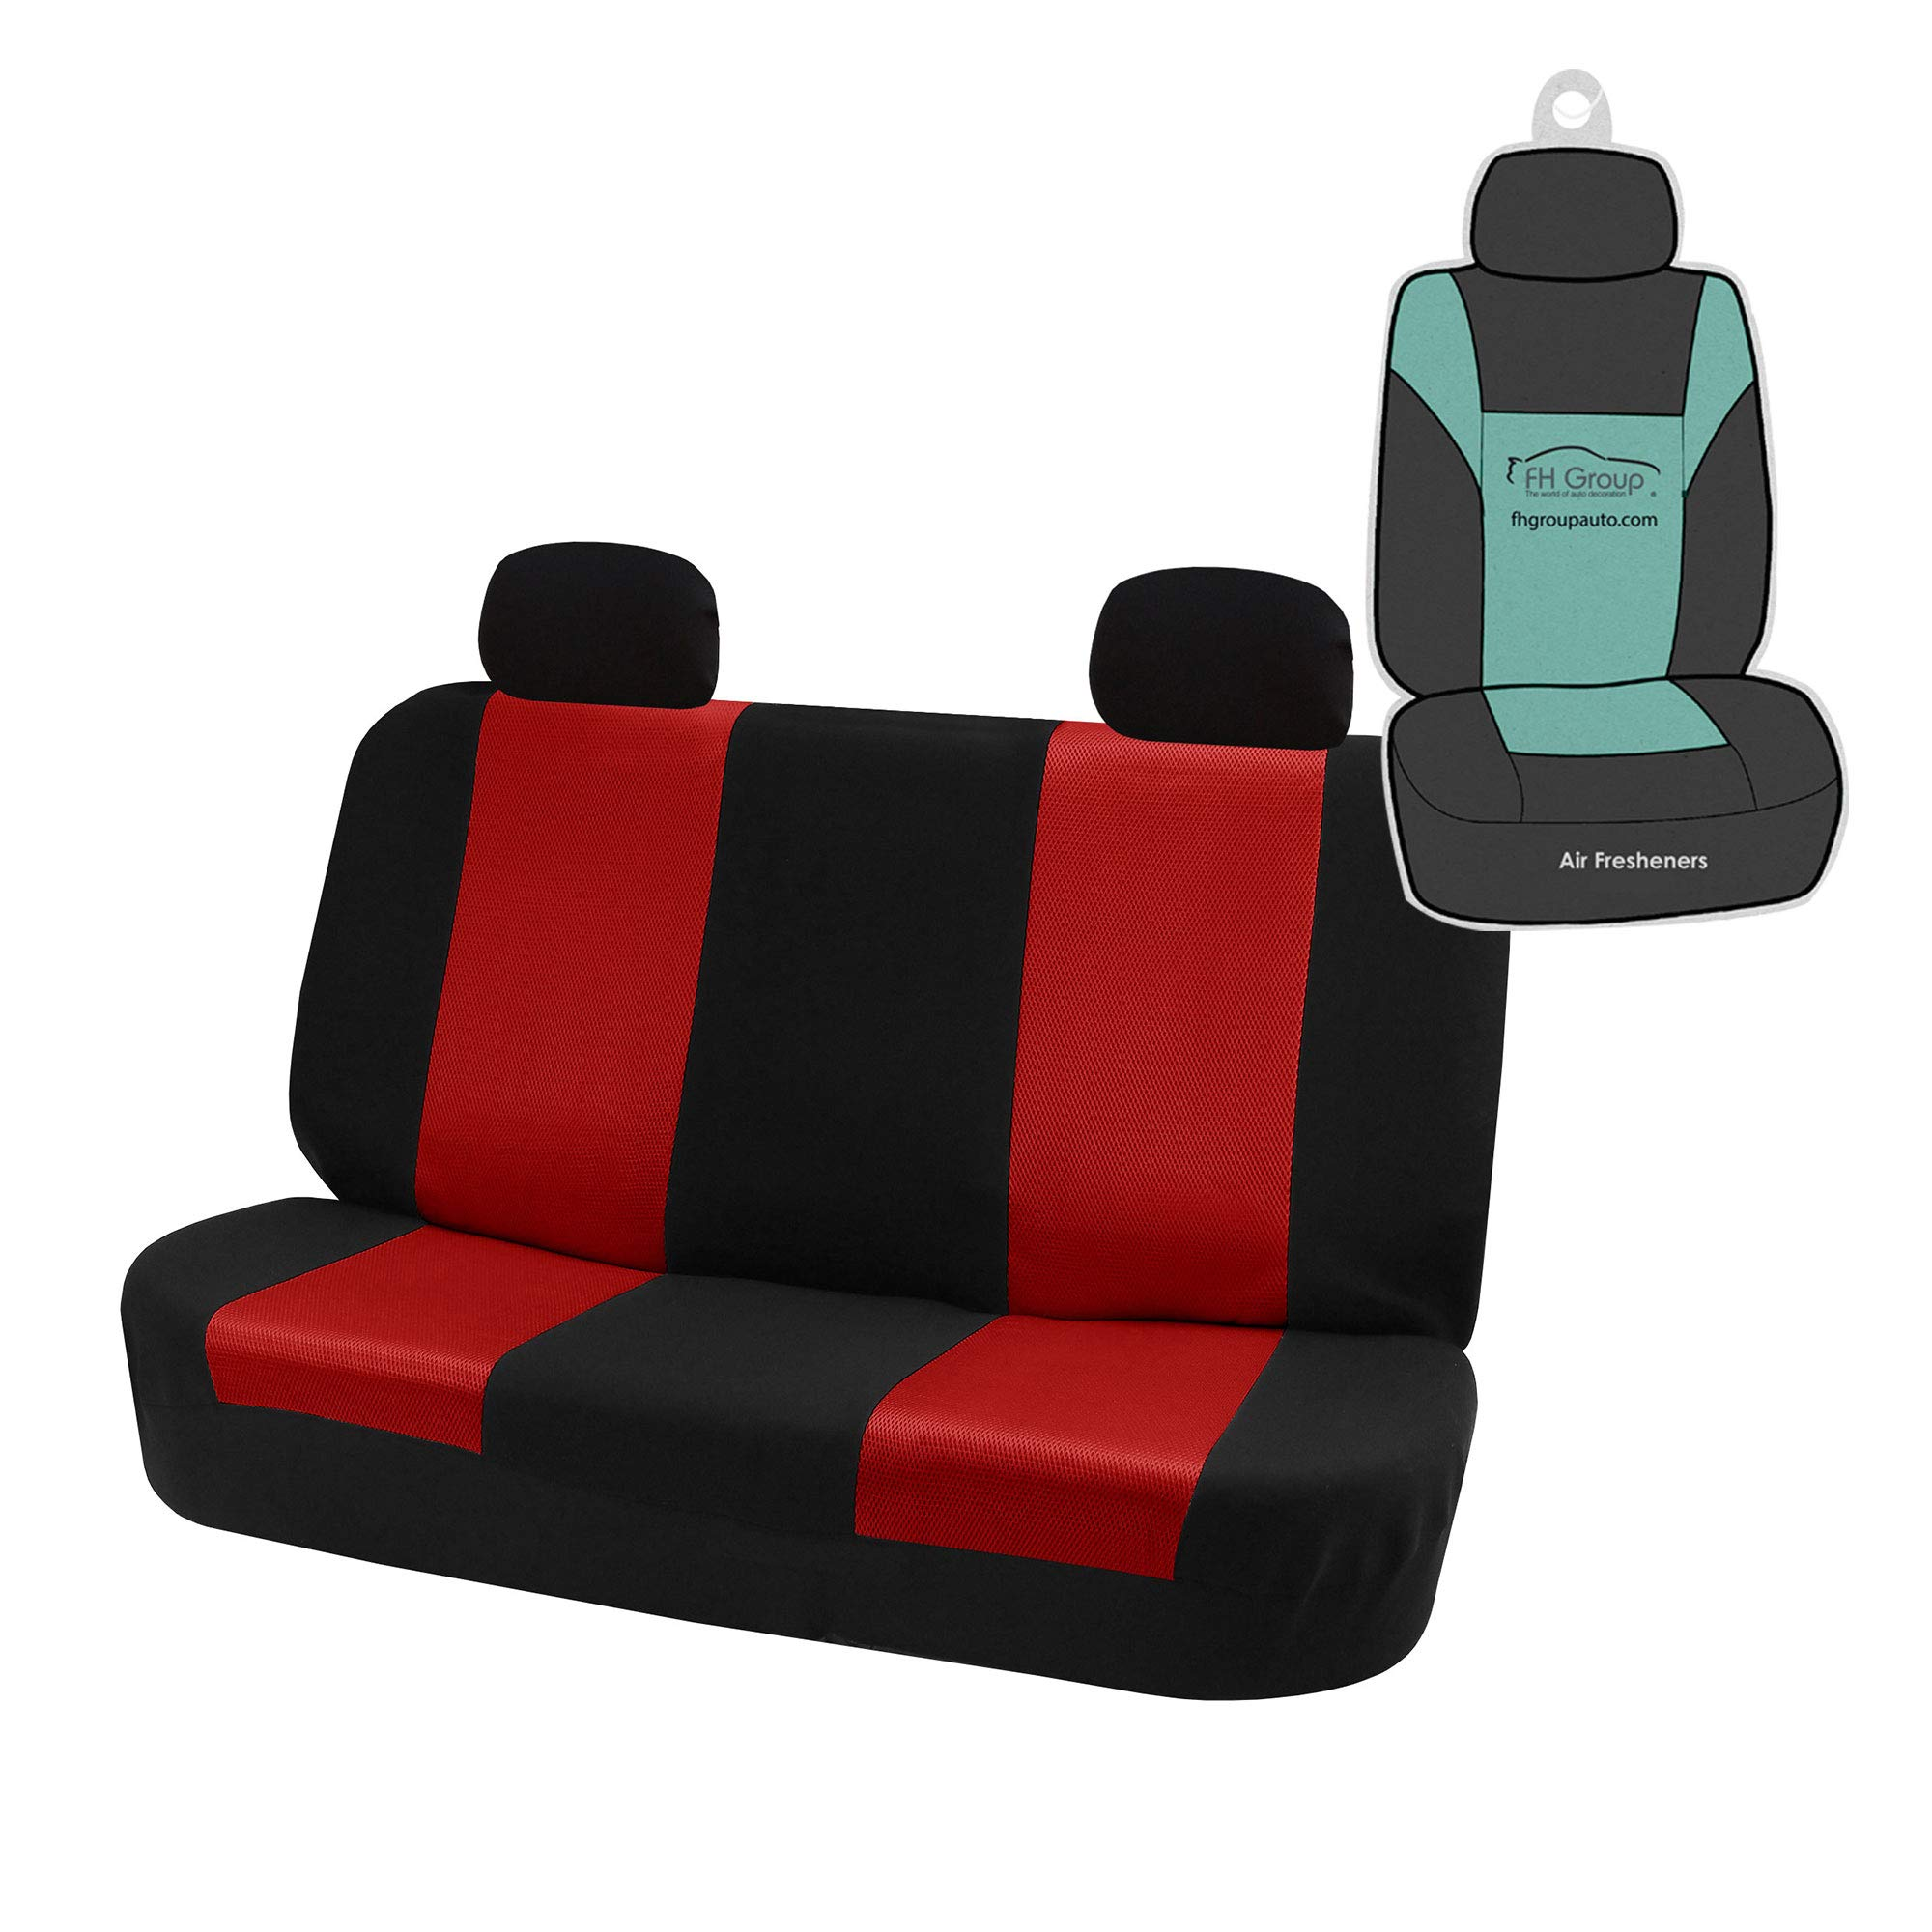 FH Group FH-FB102R012 Classic Solid Bench Car Seat Cover Red/Black- Fit Most Car, Truck, SUV, or Van by FH Group